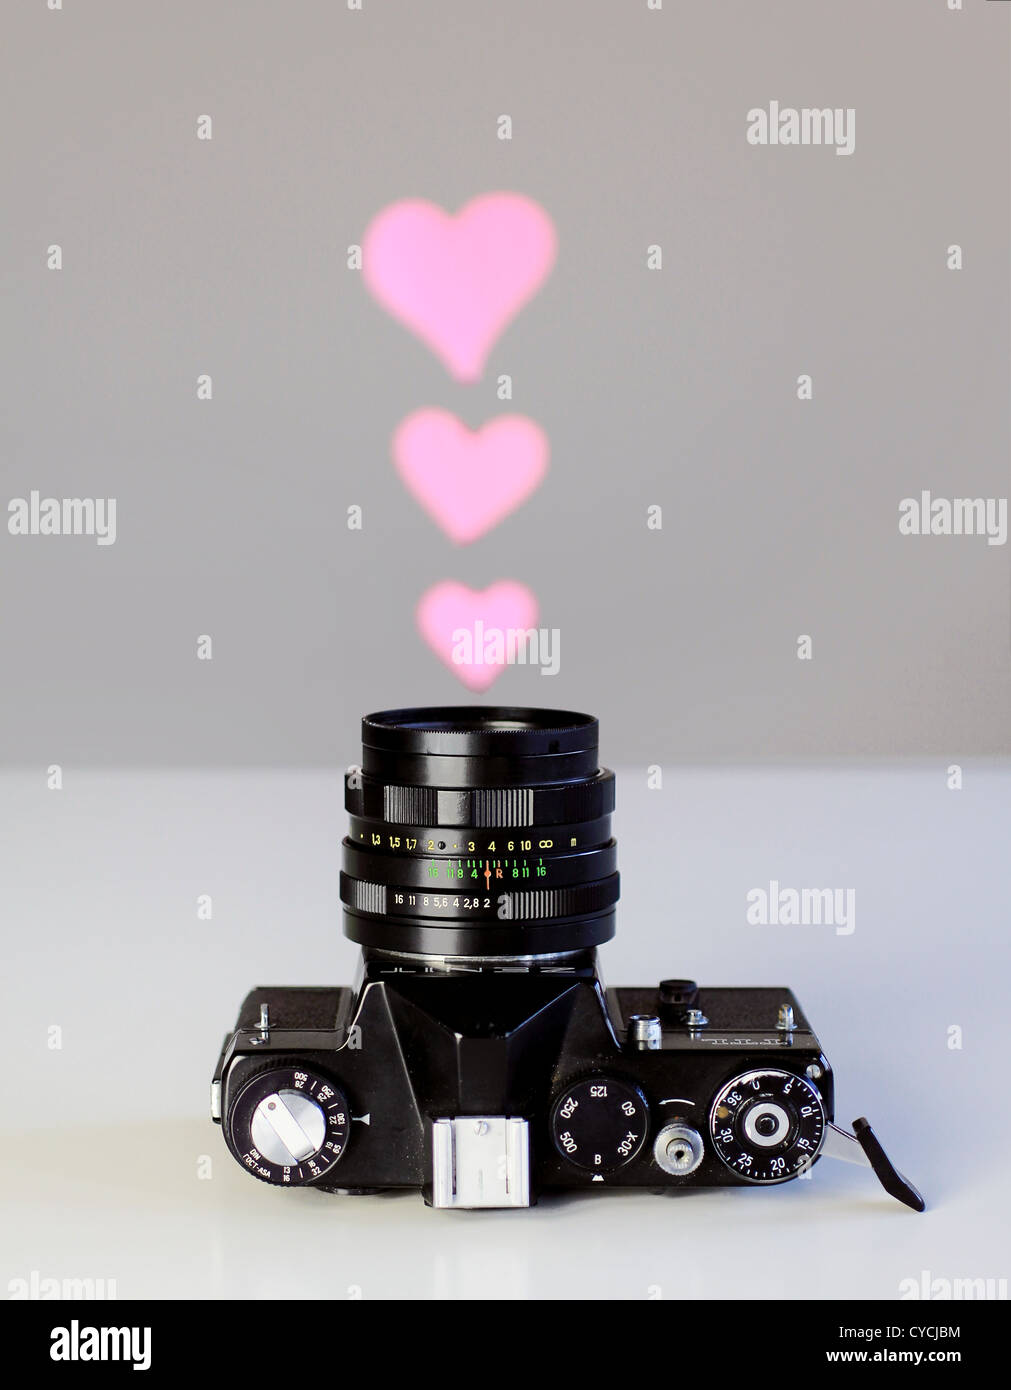 camera,photography,passion - Stock Image